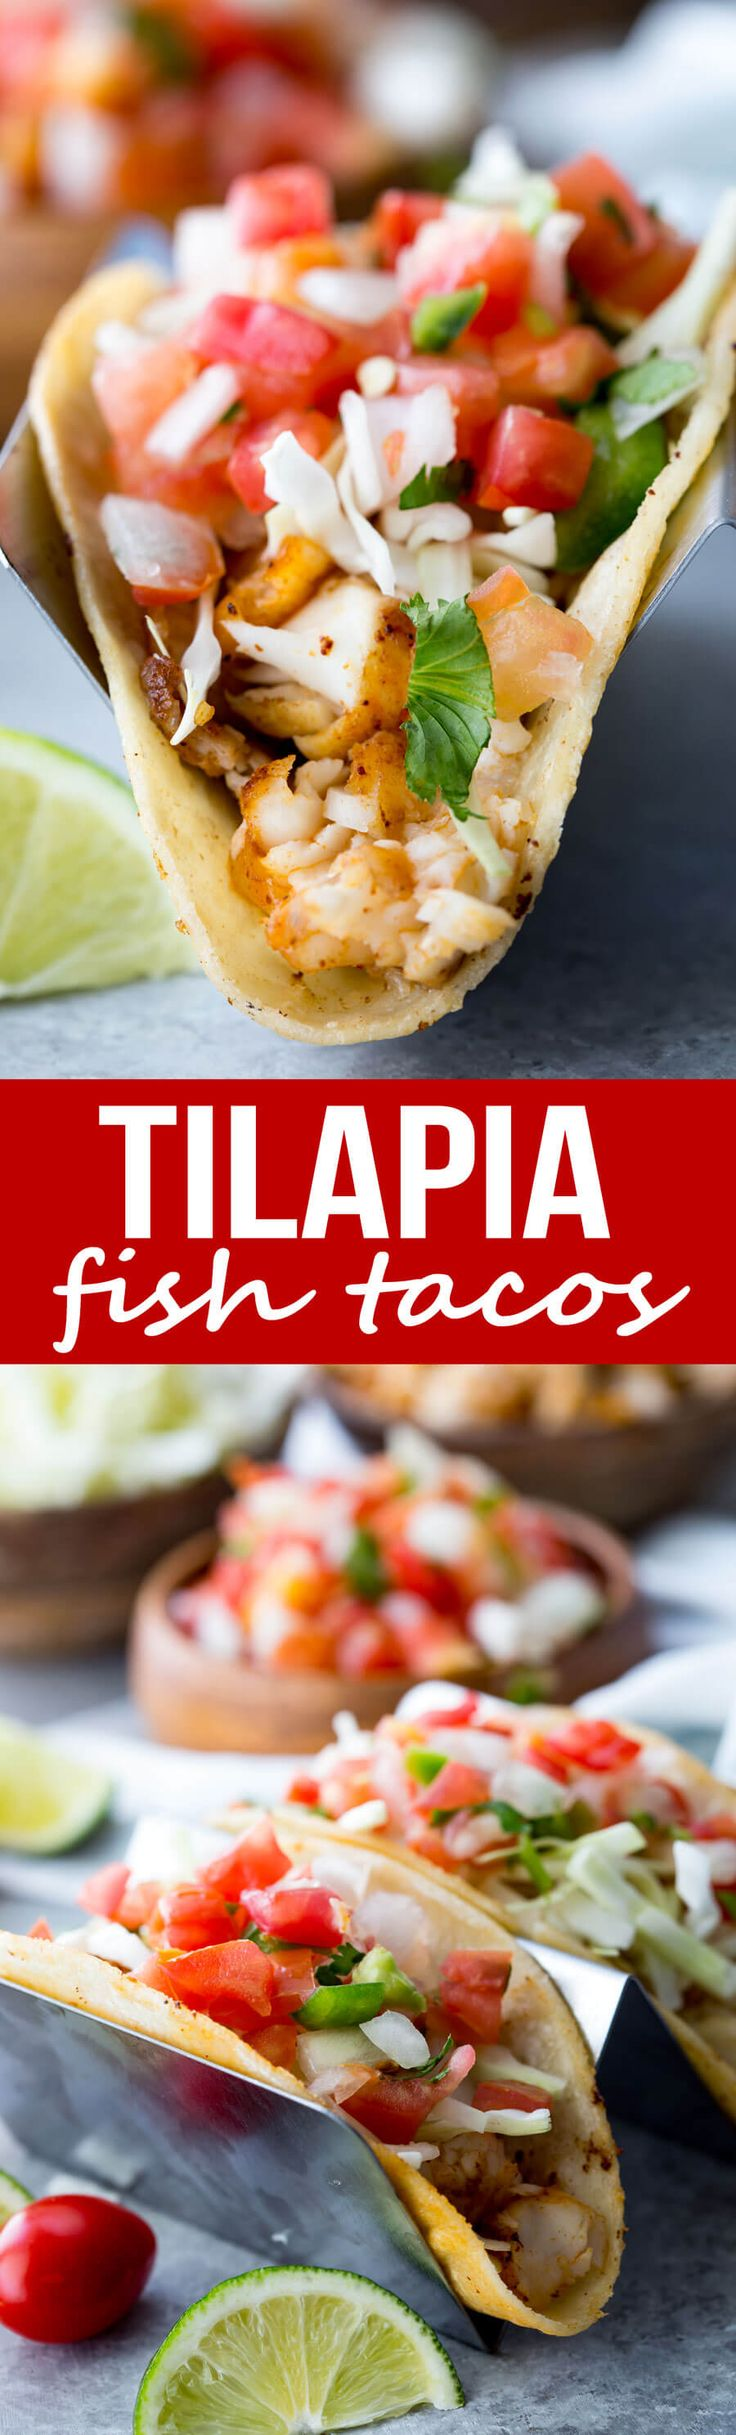 Tilapia Fish Tacos: Easy to make, mildly flavored, delicious, flaky, and loaded with flavor. These tilapia fish tacos are healthy, easy, and delicious. via @Rachael Yerkes